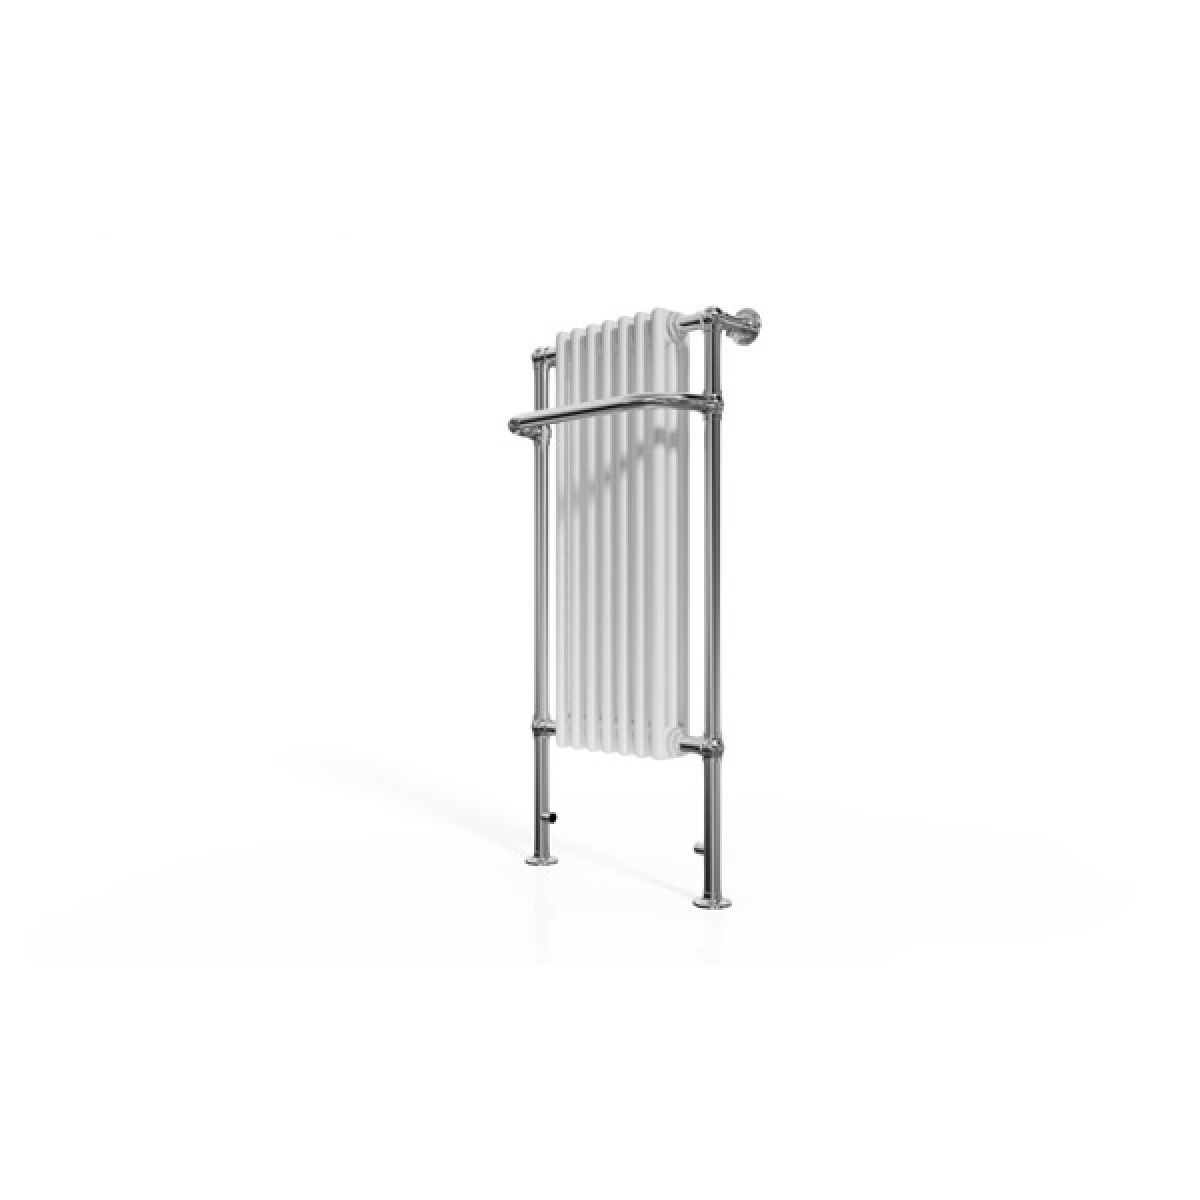 Cassellie Traditional Towel Radiator 1130mm x 553mm